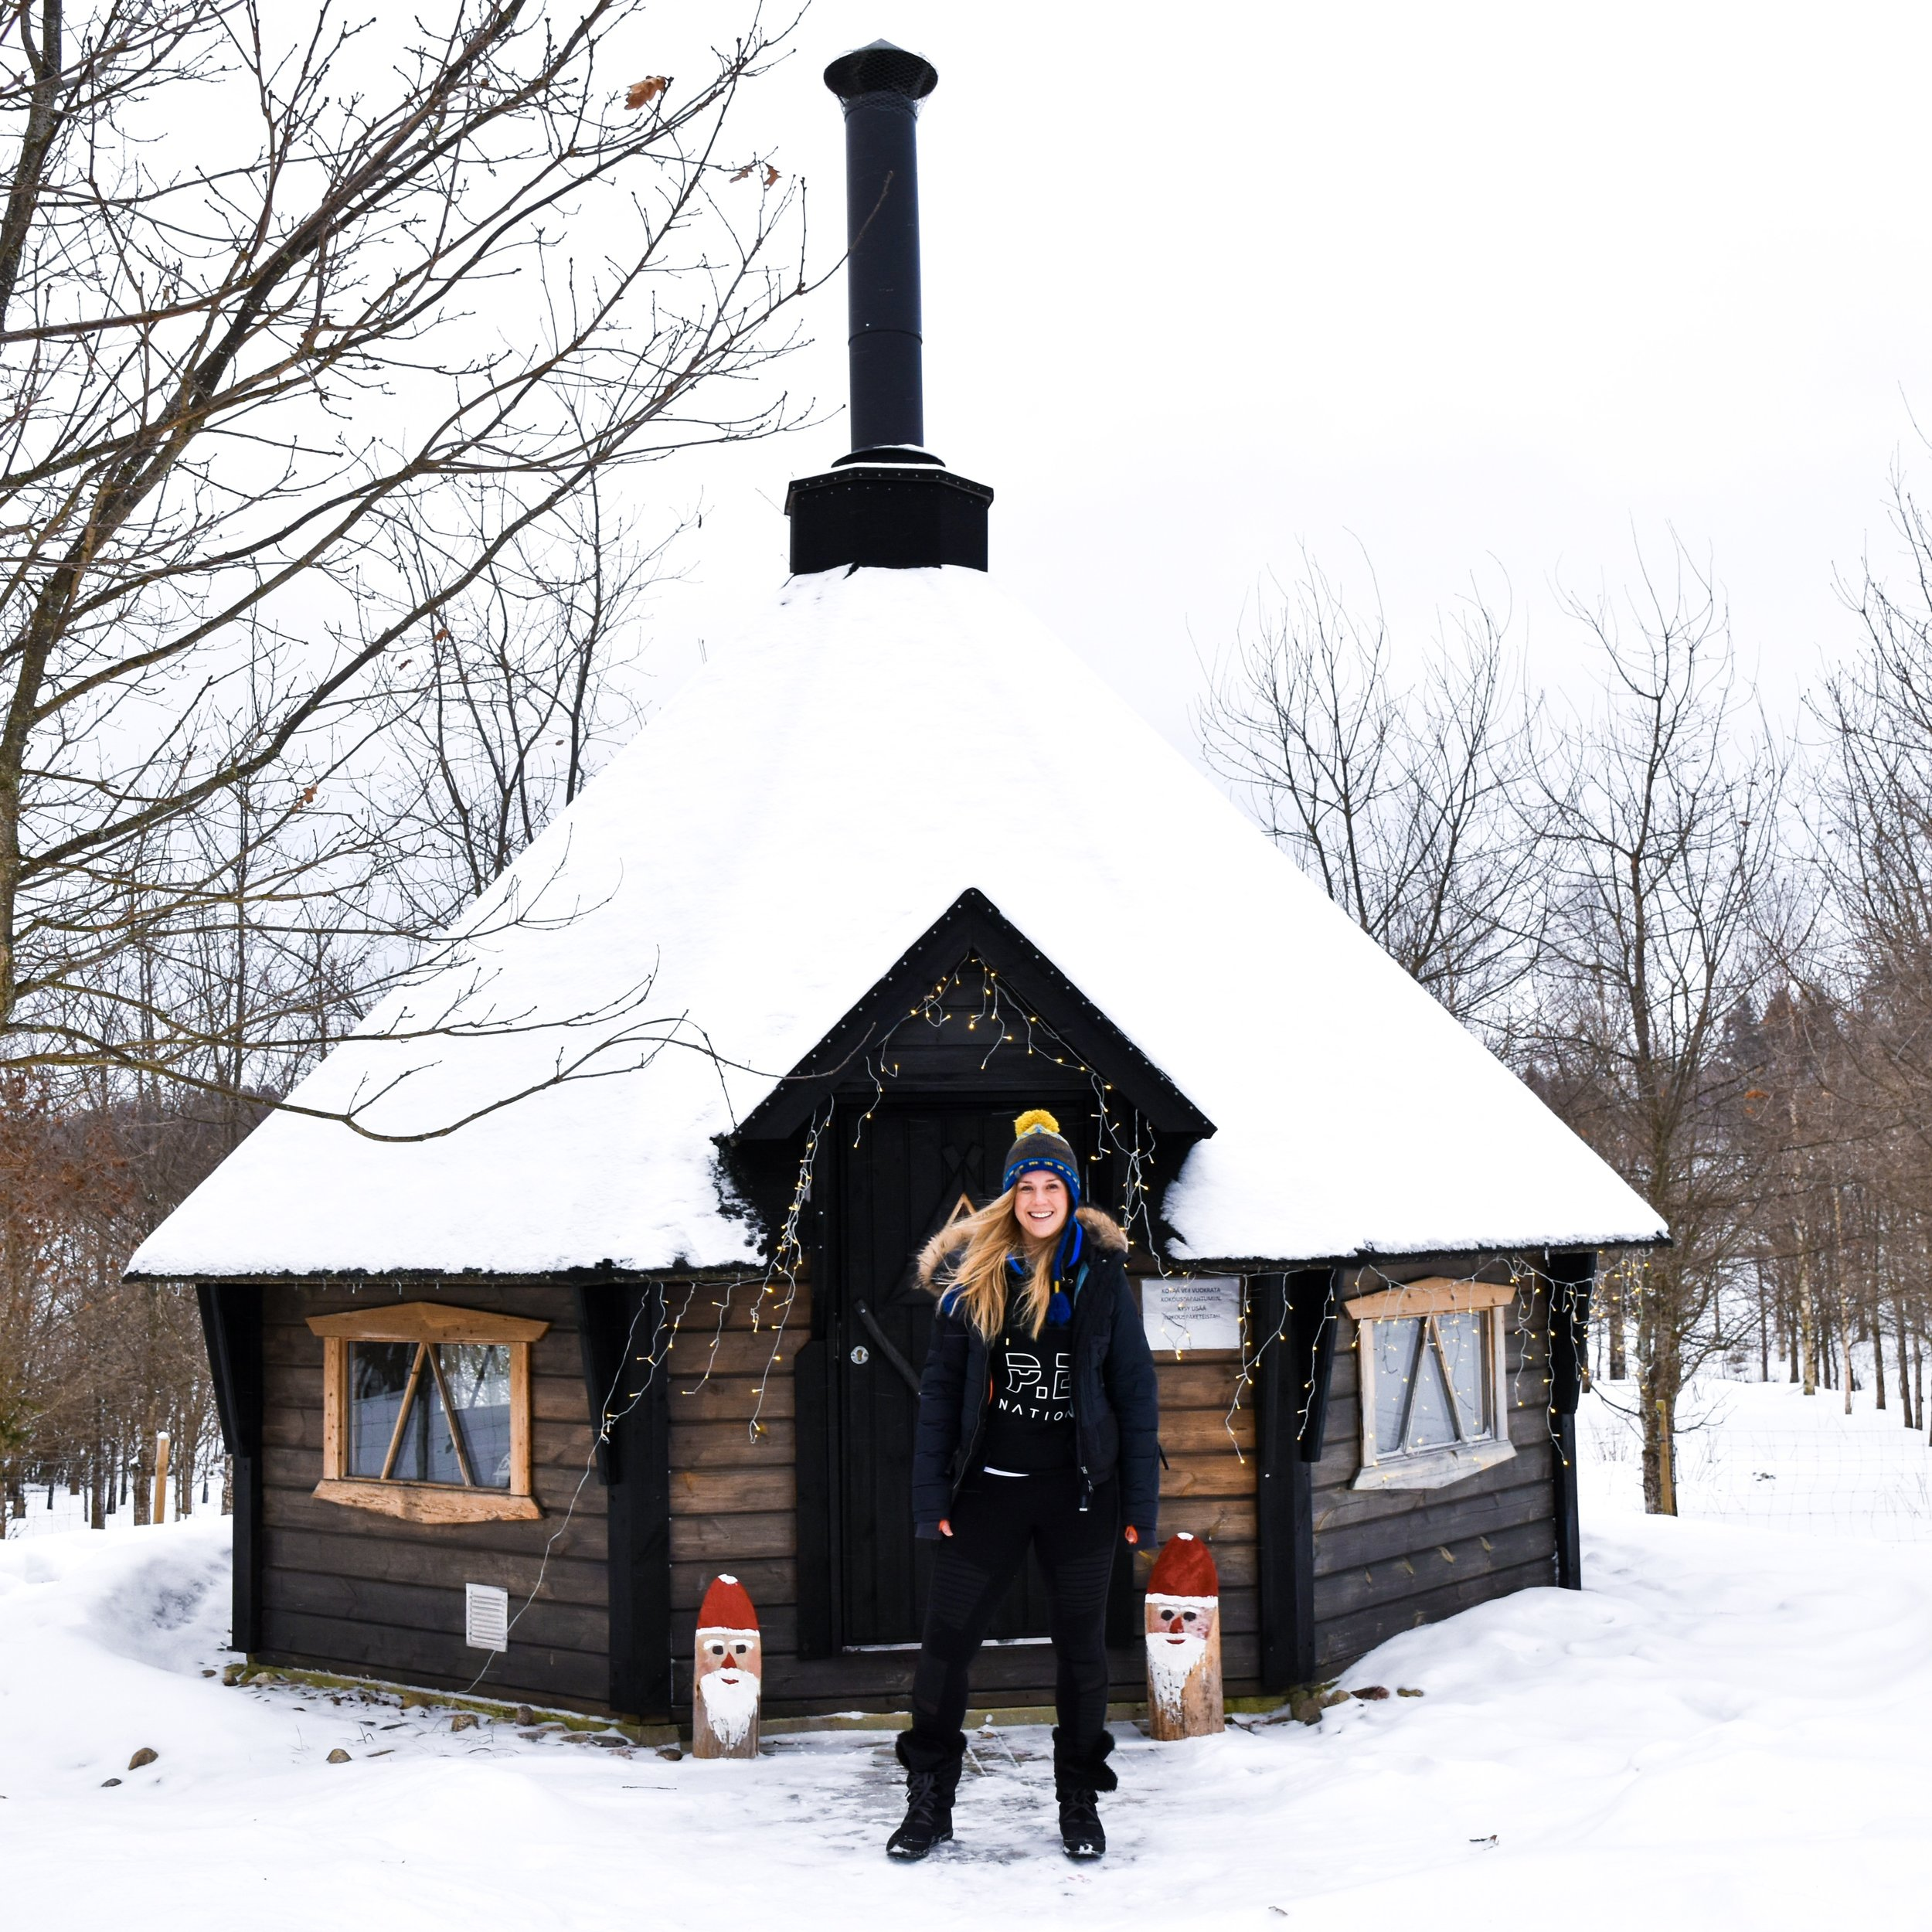 When it's minus 20 outside and you find a hut with a fire and hot tea! Lahti, Finland